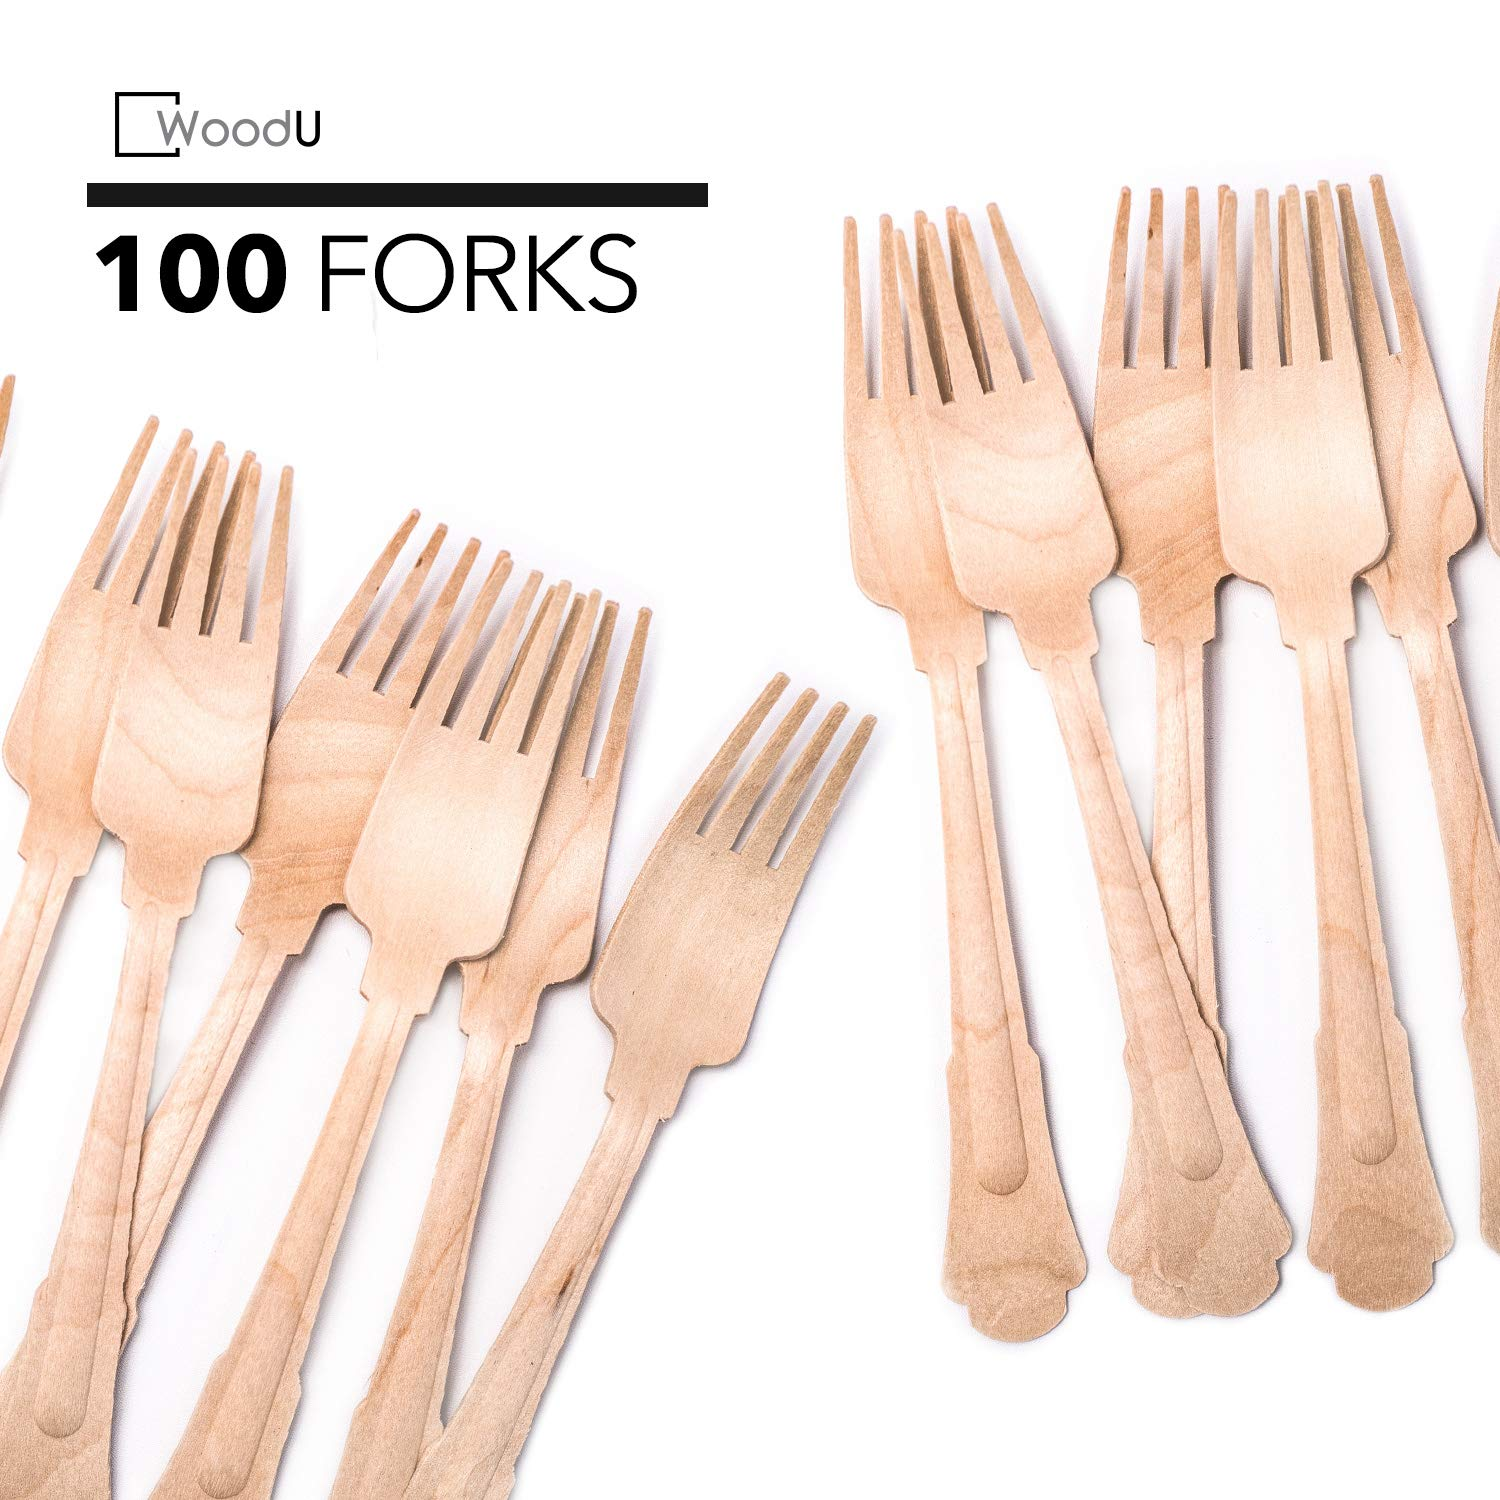 WoodU Elegant Wooden Forks - Disposable Utensils, Biodegradable, Eco-Friendly - for Special Events, Fancy Parties, Wedding Receptions (100 Pack) 7.75'' Length by WoodU by WoodU